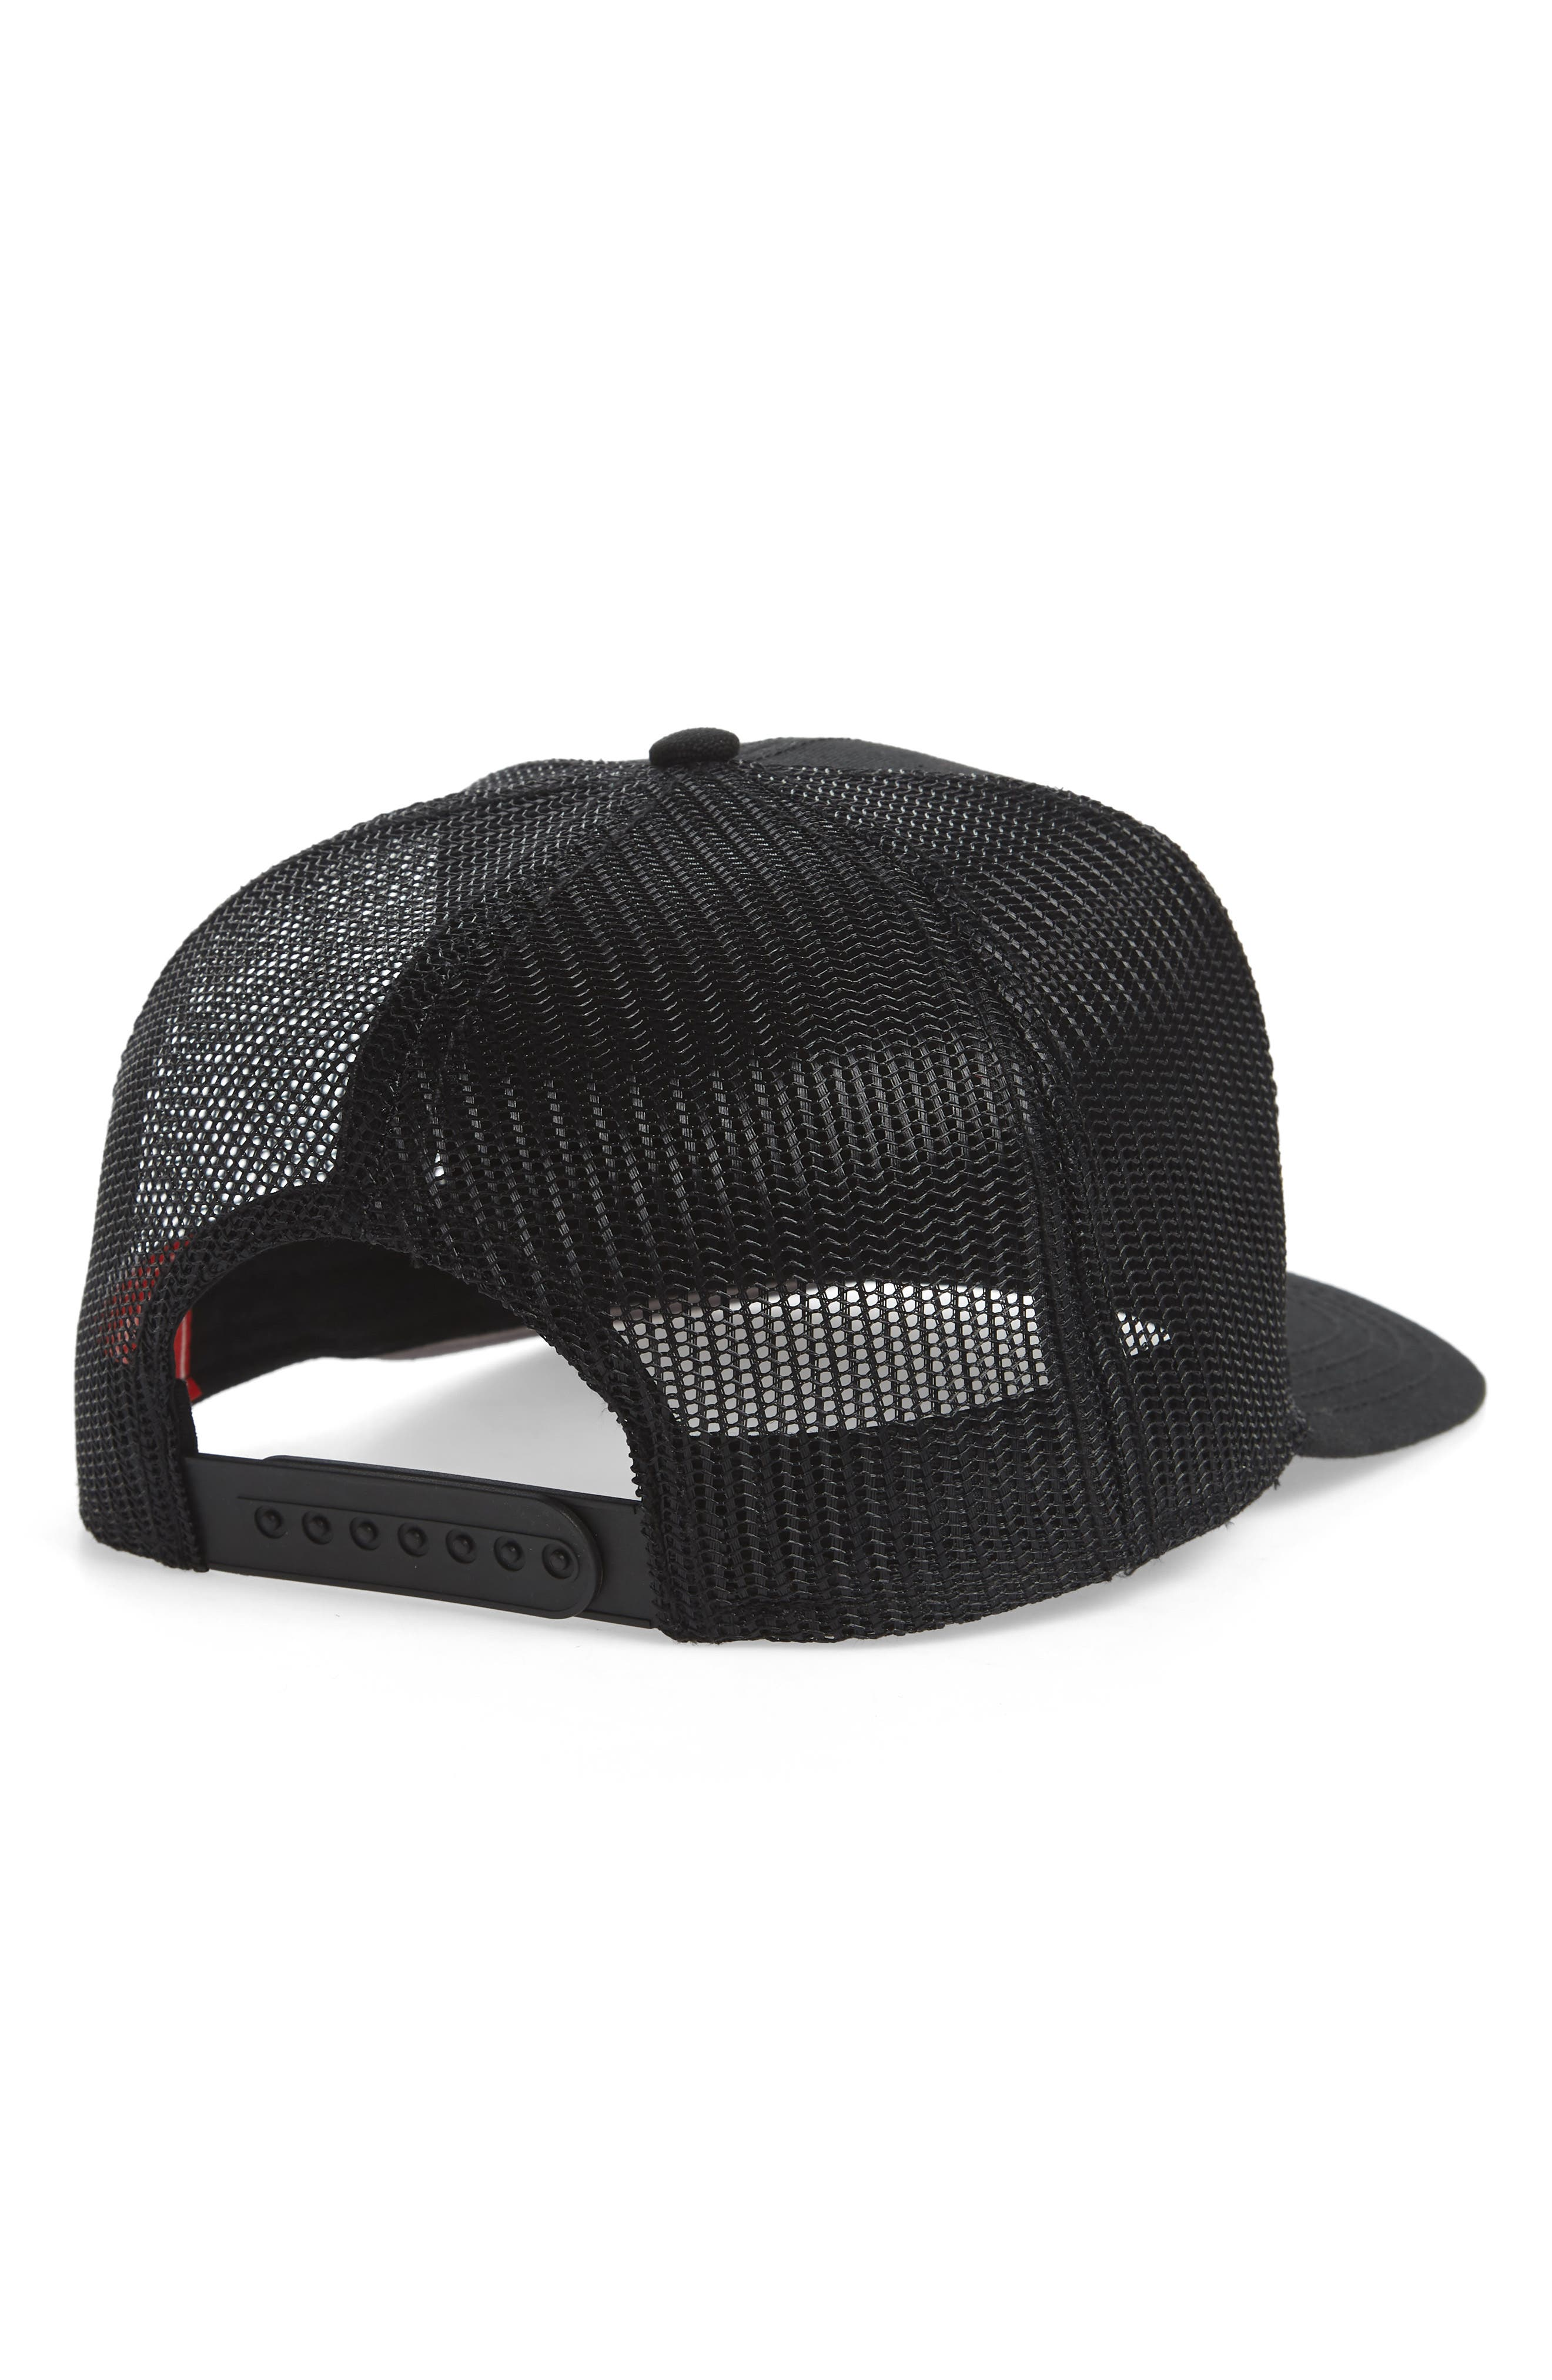 Valin Coast Trucker Cap,                             Alternate thumbnail 3, color,